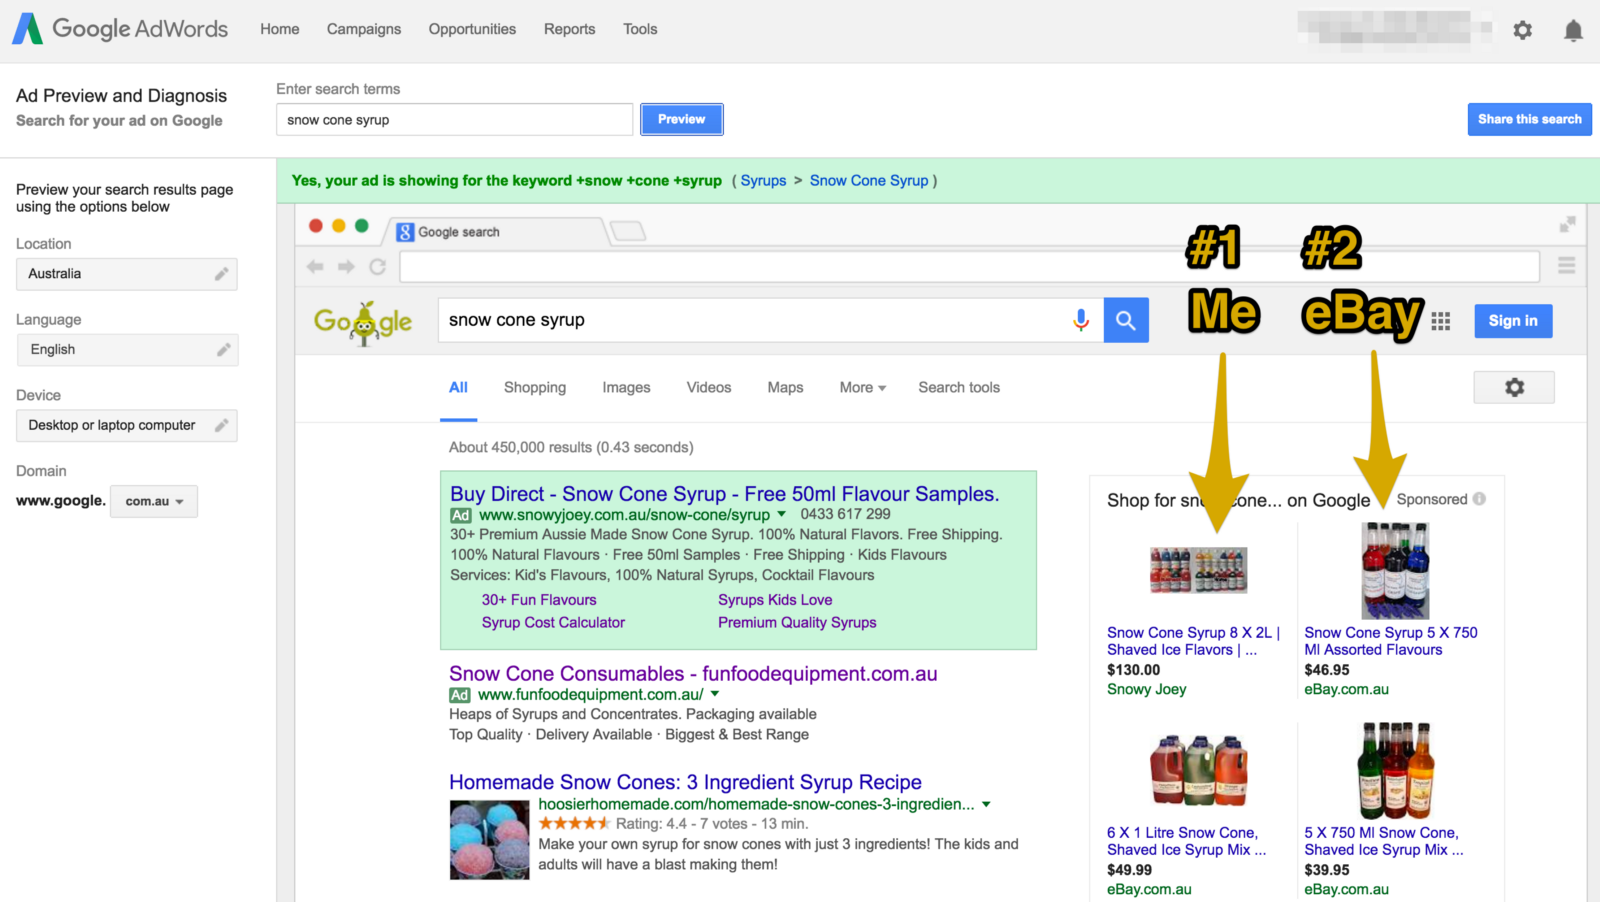 How We Outcompete Ebay On Google Adwords Without A Big Ad Budget